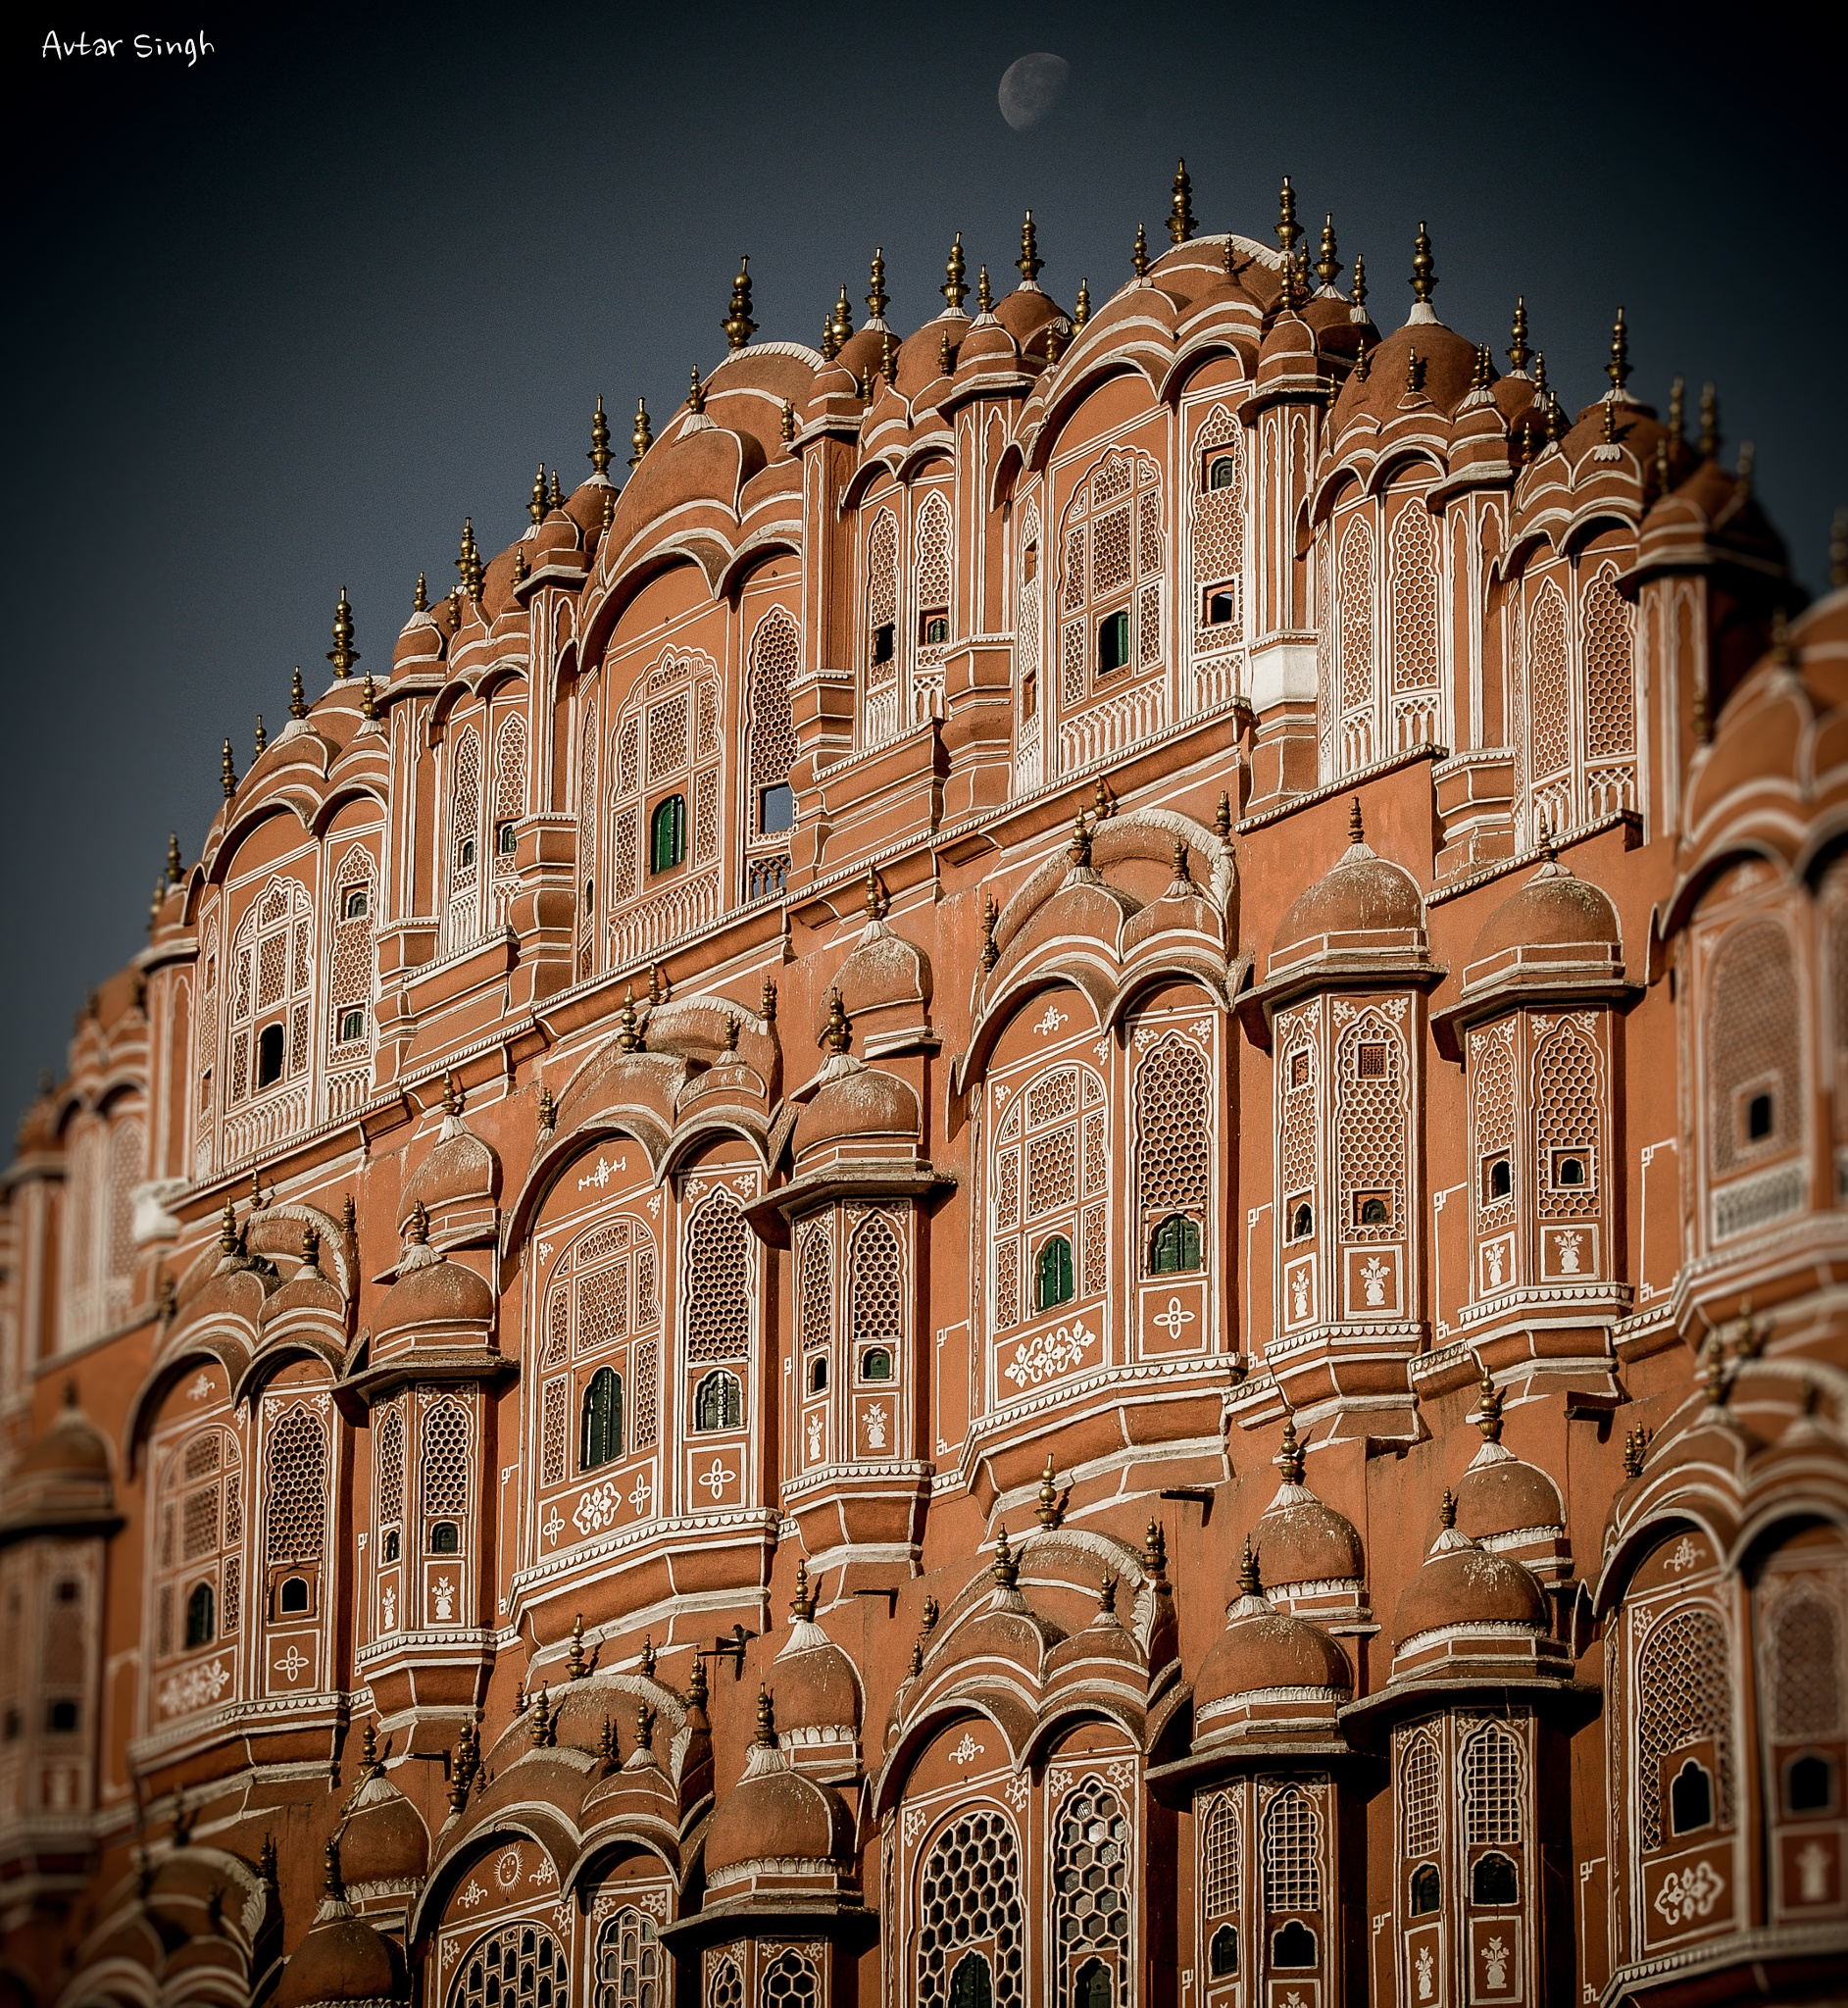 Palace of Winds by Avtar Singh